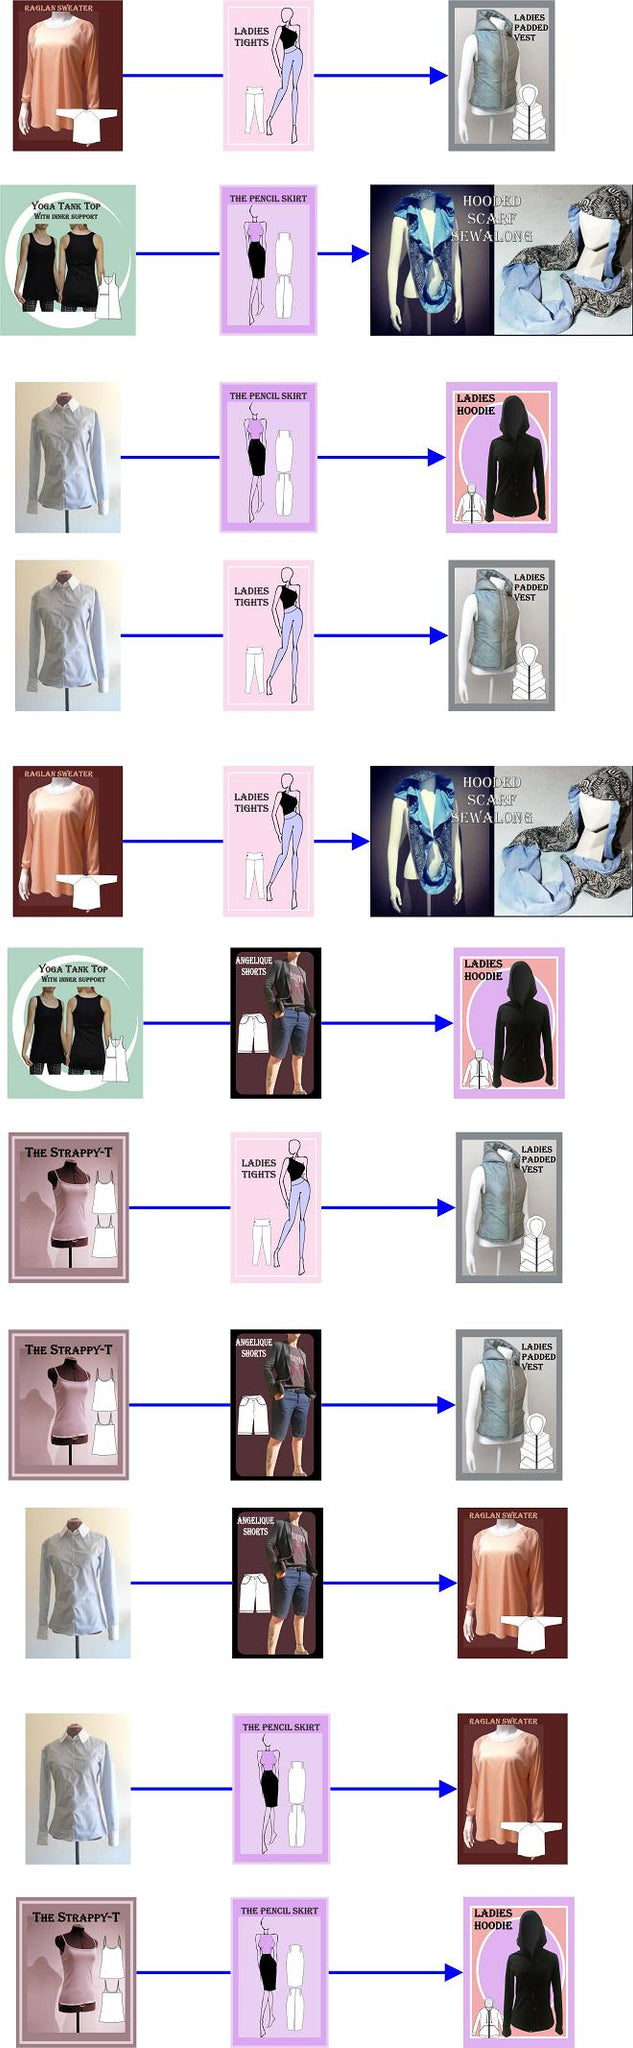 athleisure, capsule, wardrobe, fashion, Sew, sewing, sewalong, sewalongs, sew-alongs, sew along, sewing pattern, designer, fashion, sew your own, learn to sew, free